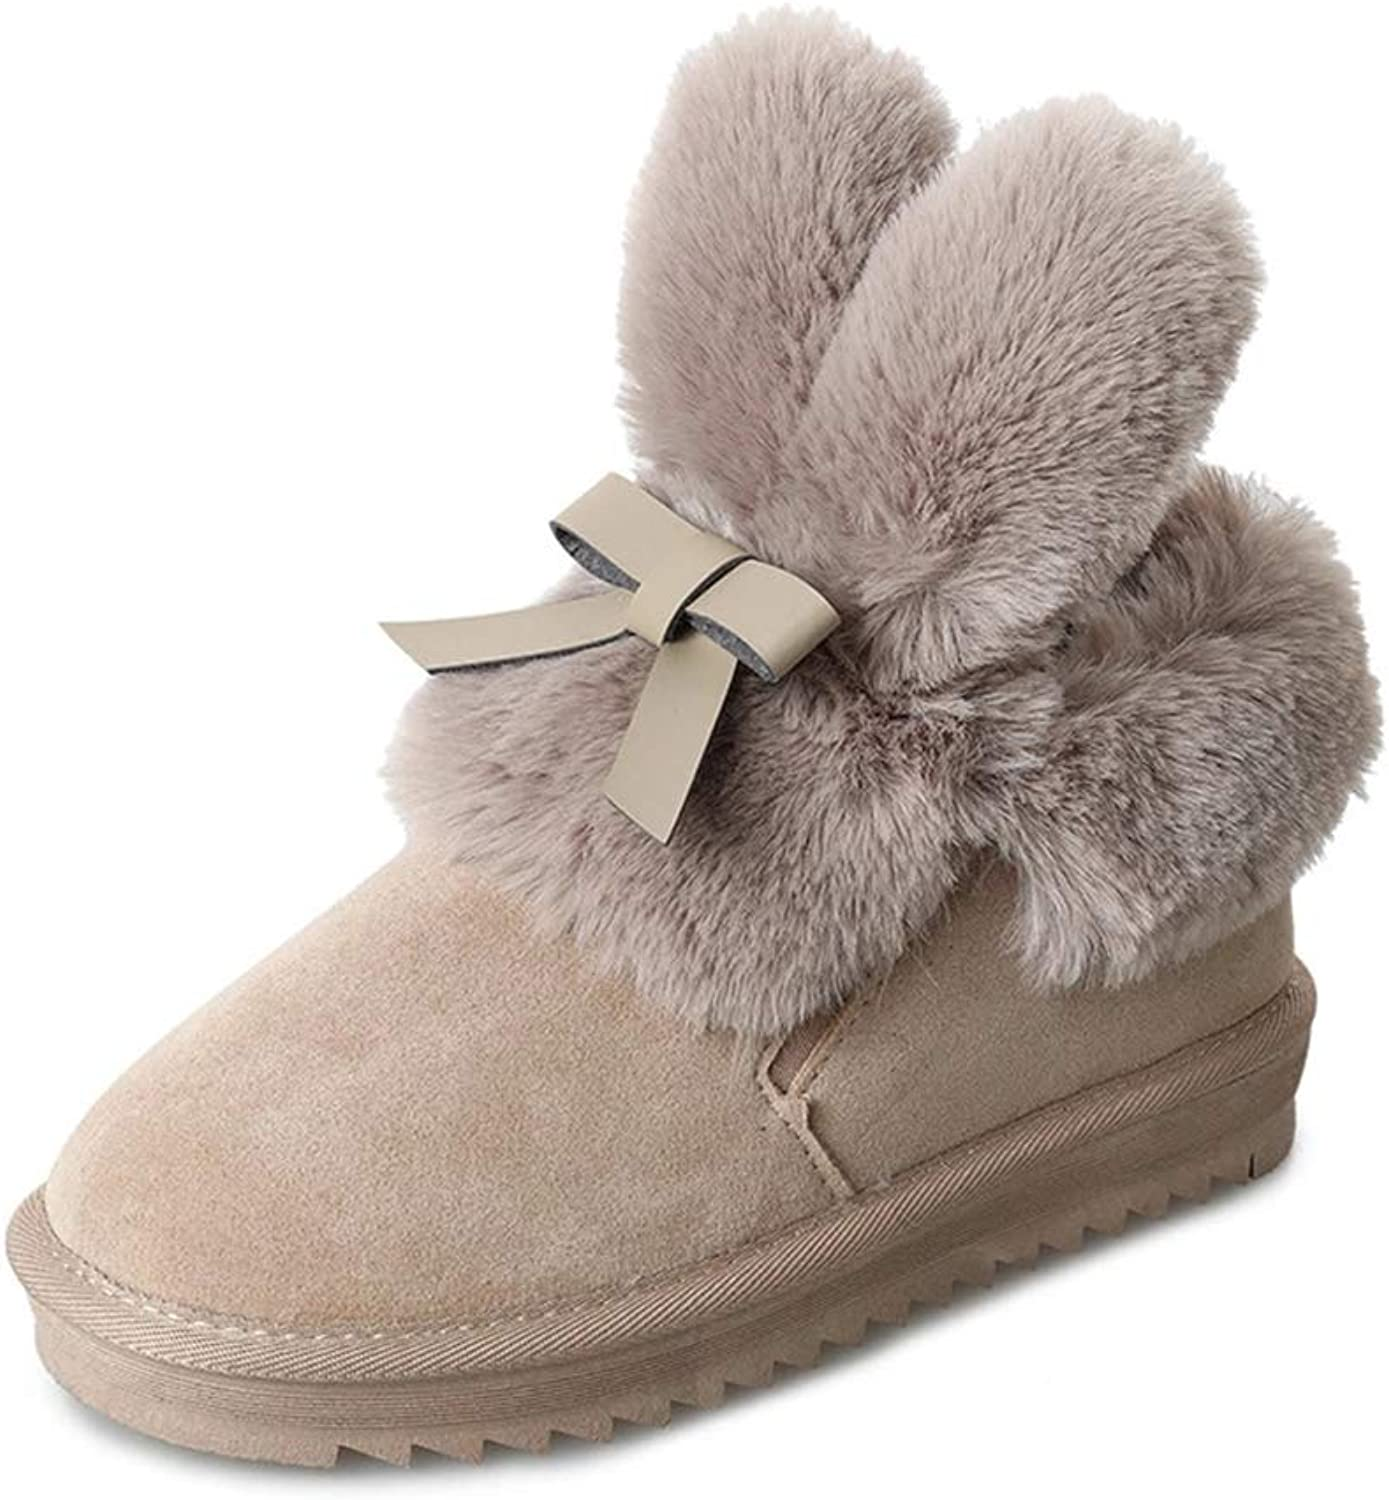 Ruiatoo Women's Snow Boots Winter Anti-Slip Cute Rabbit Ear with Bow Warm Fur Lined Ladies shoes